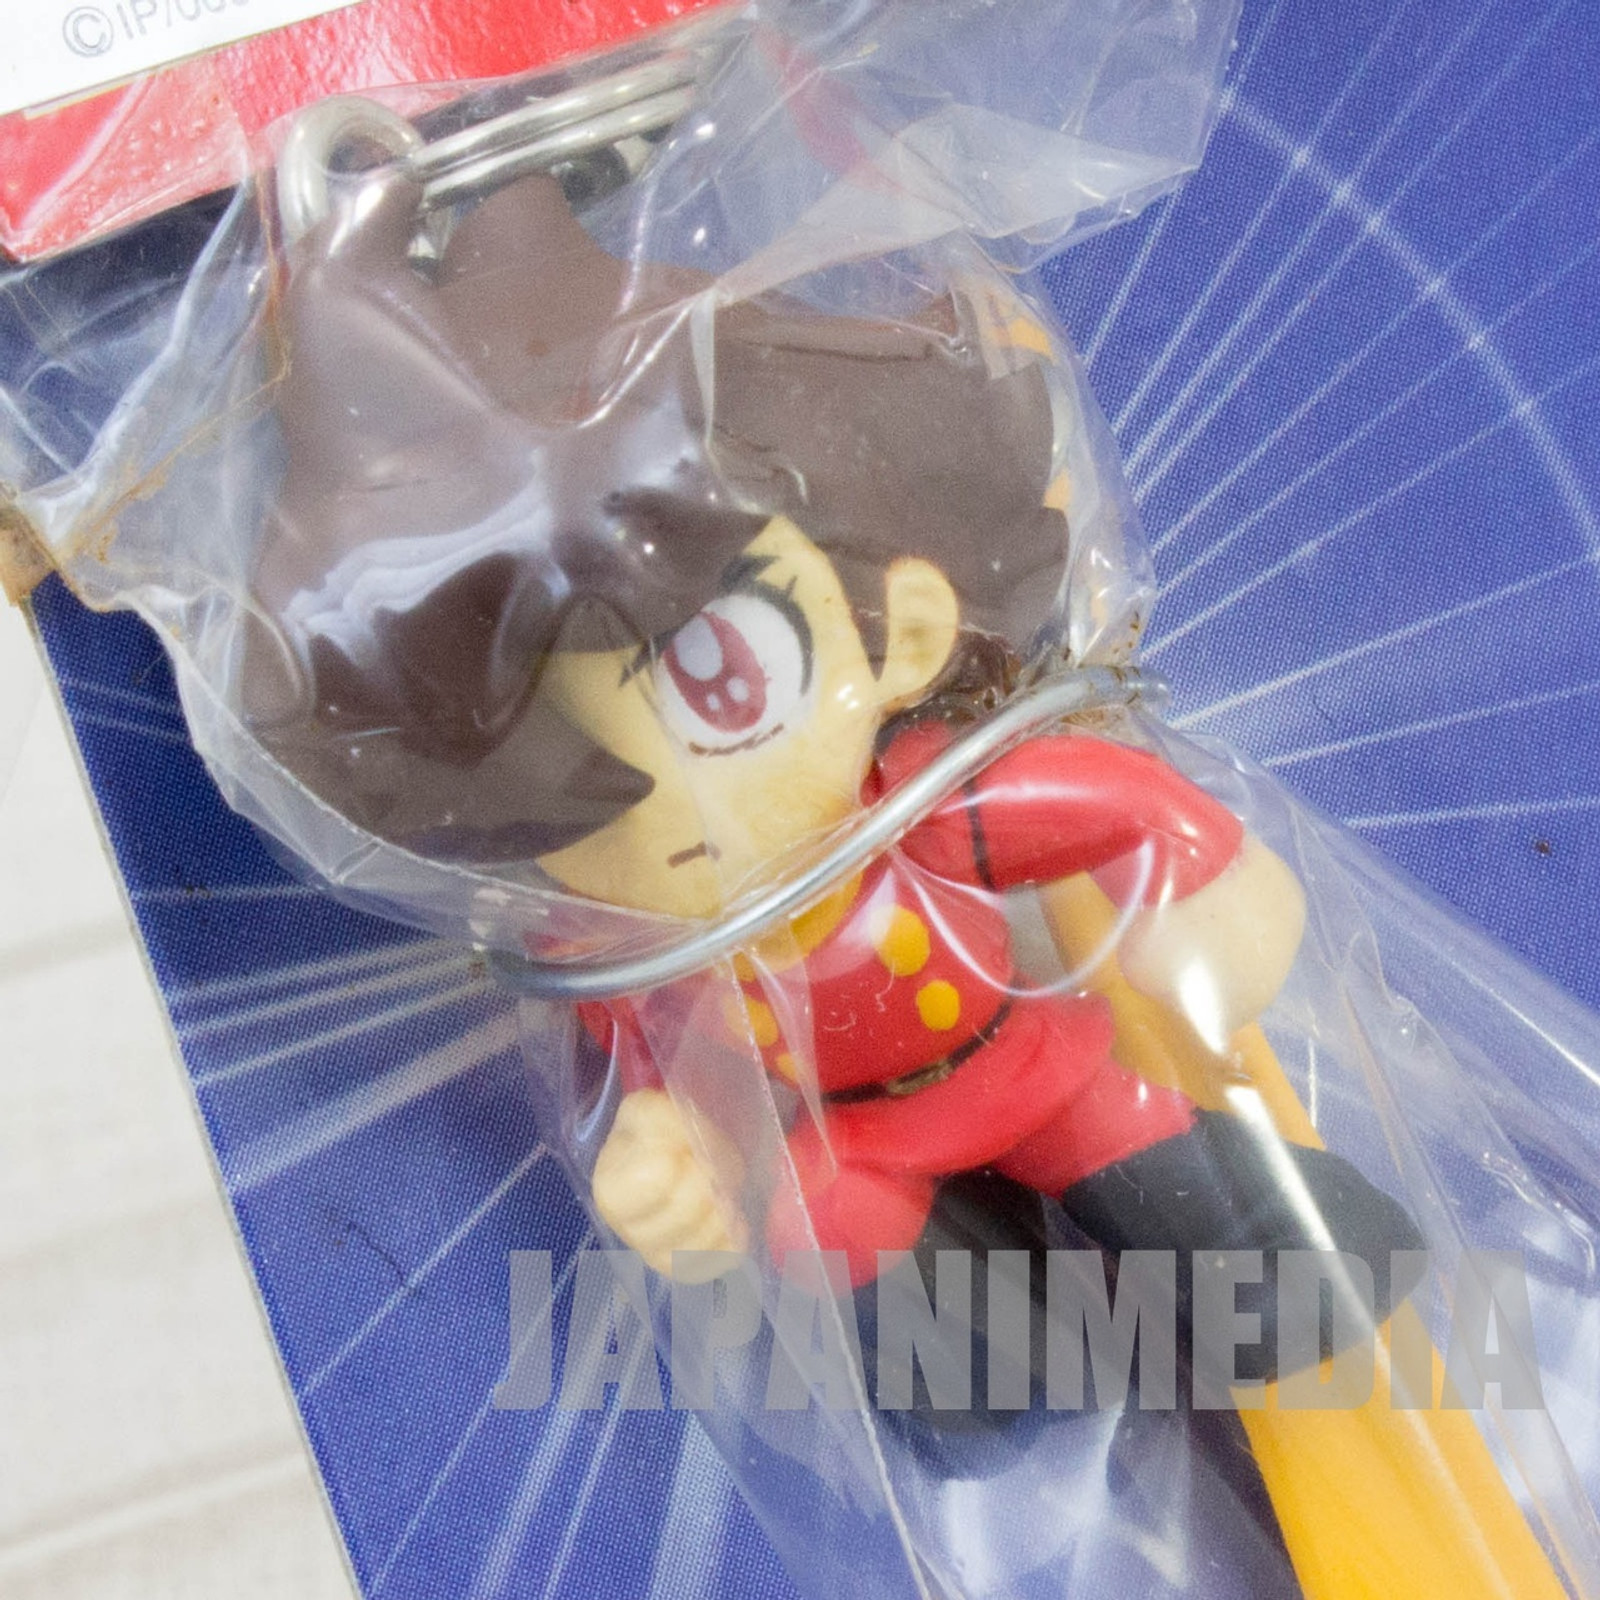 Cyborg 009 Joe Shimamura Scarf Figure Strap Banpresto JAPAN ANIME MANGA